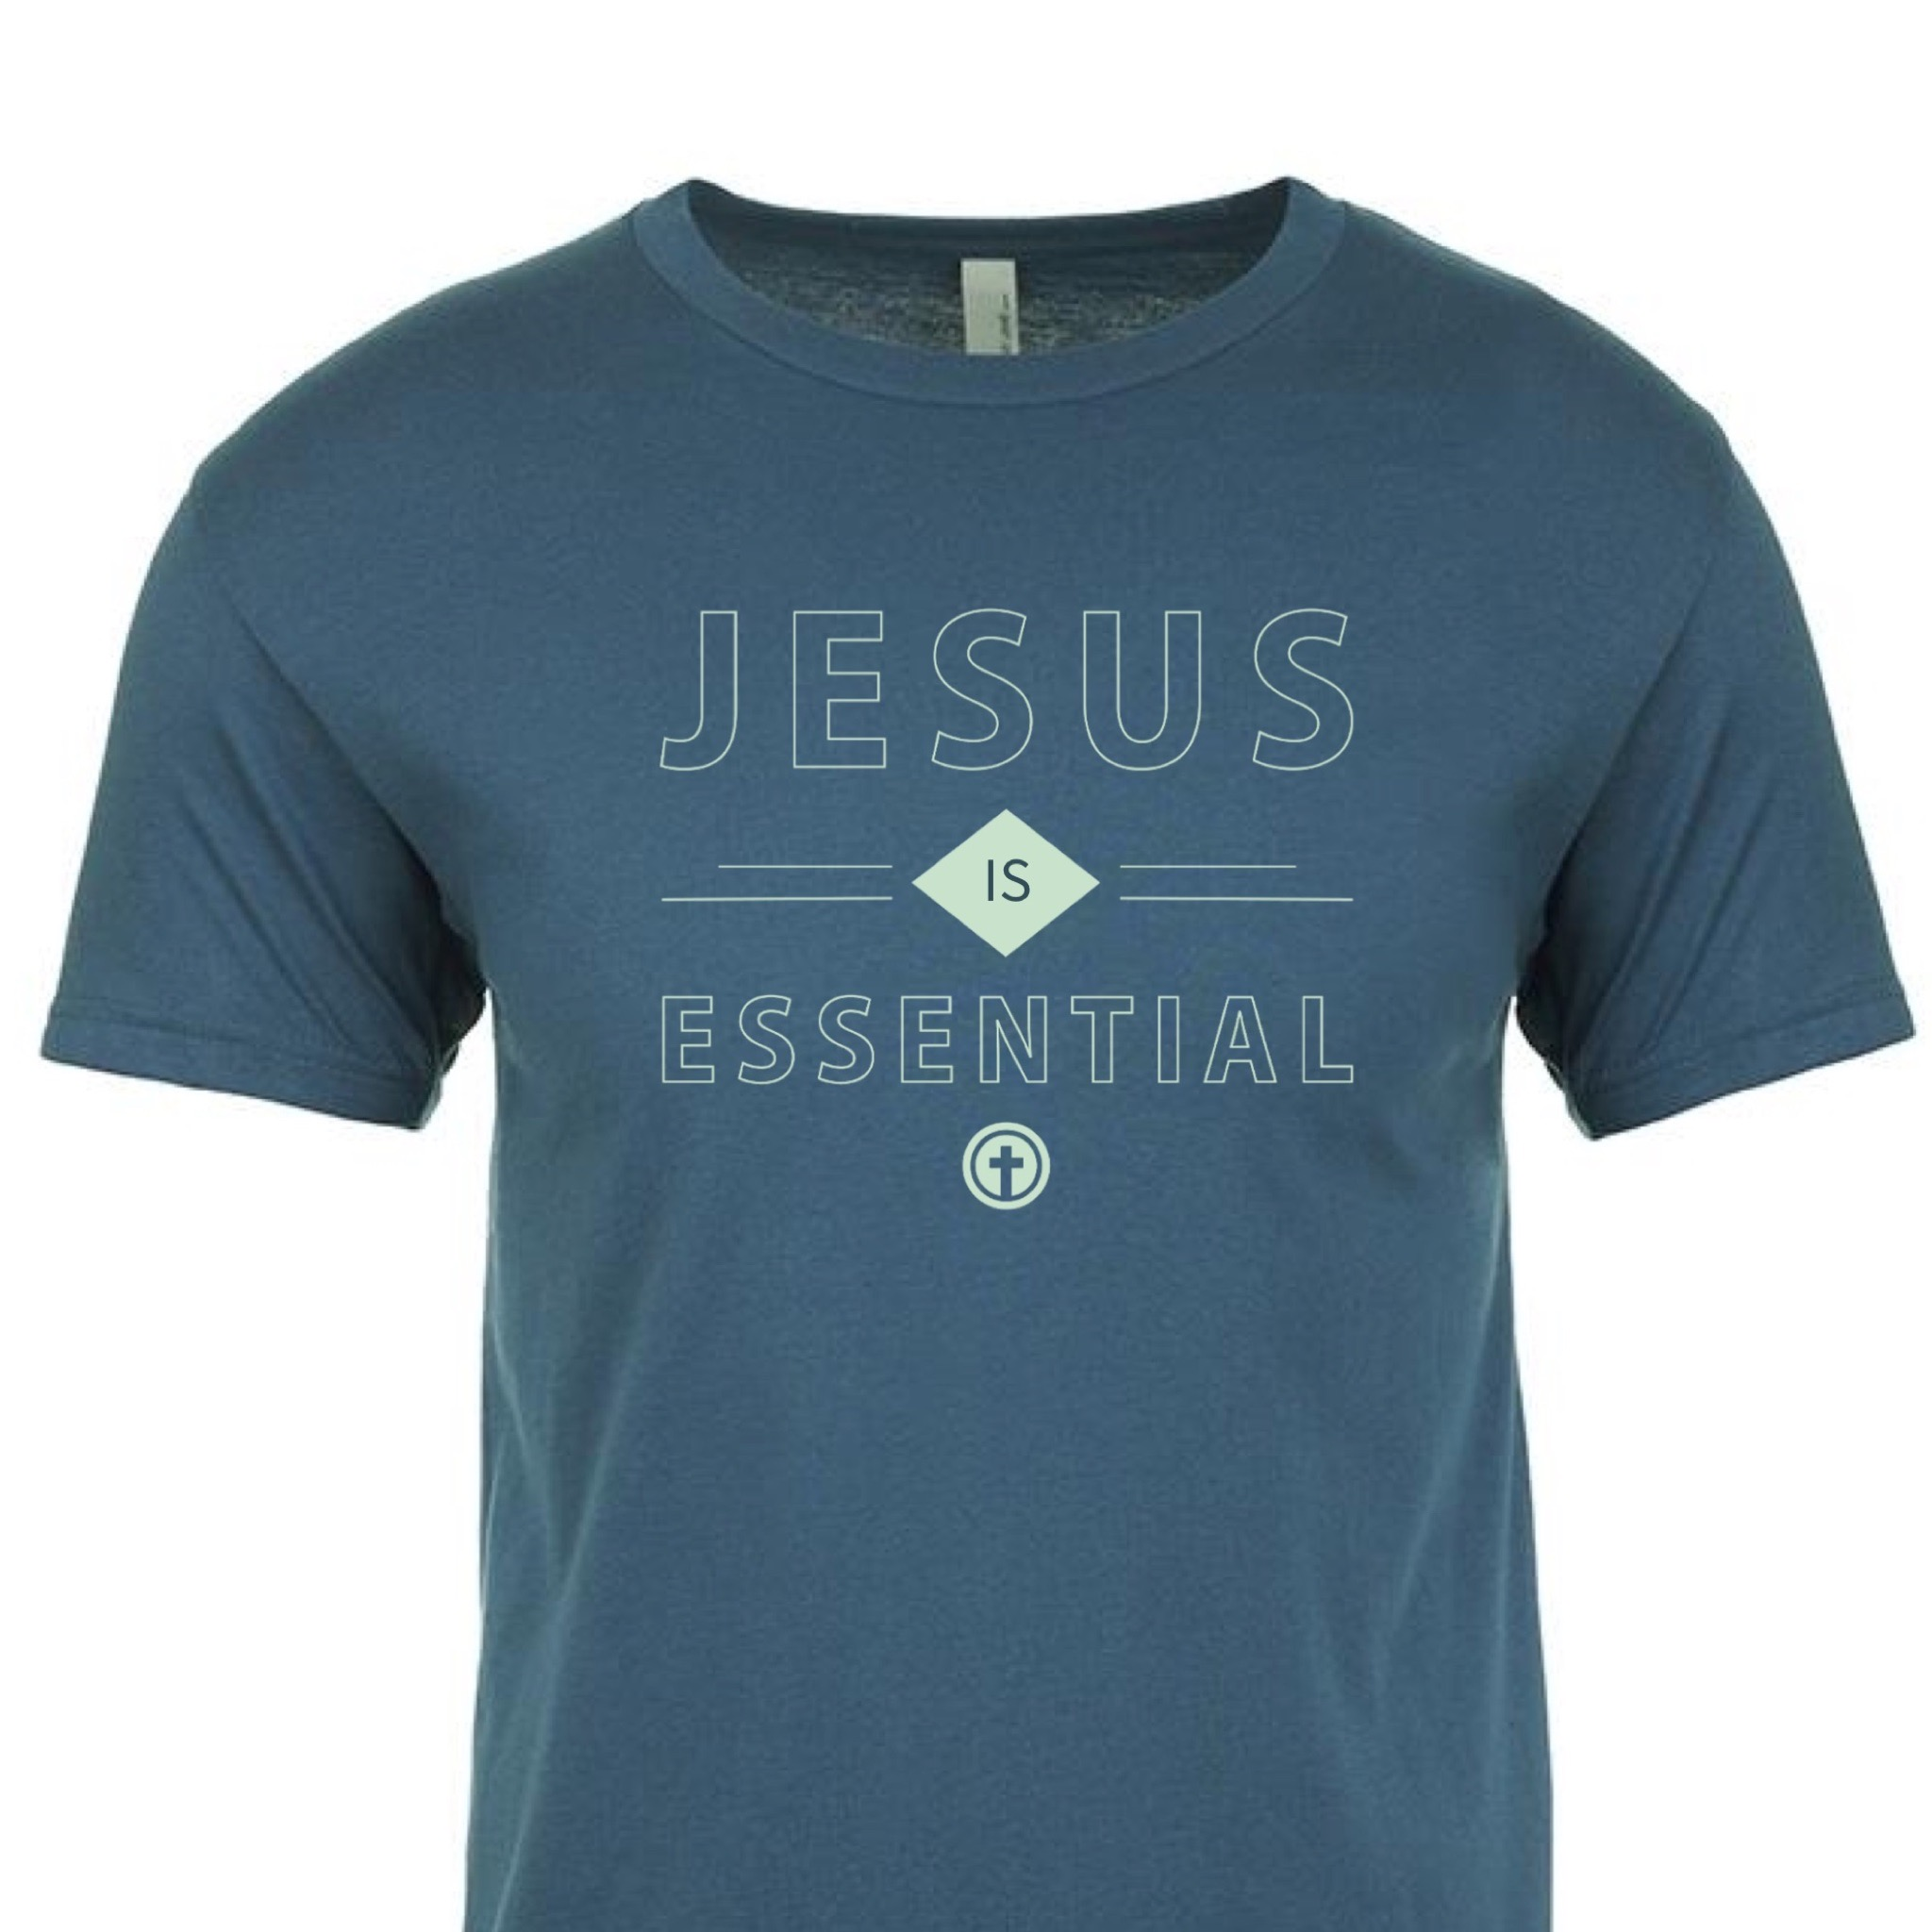 JESUS IS ESSENTIAL TEE, LIMITED EDITION BLUE